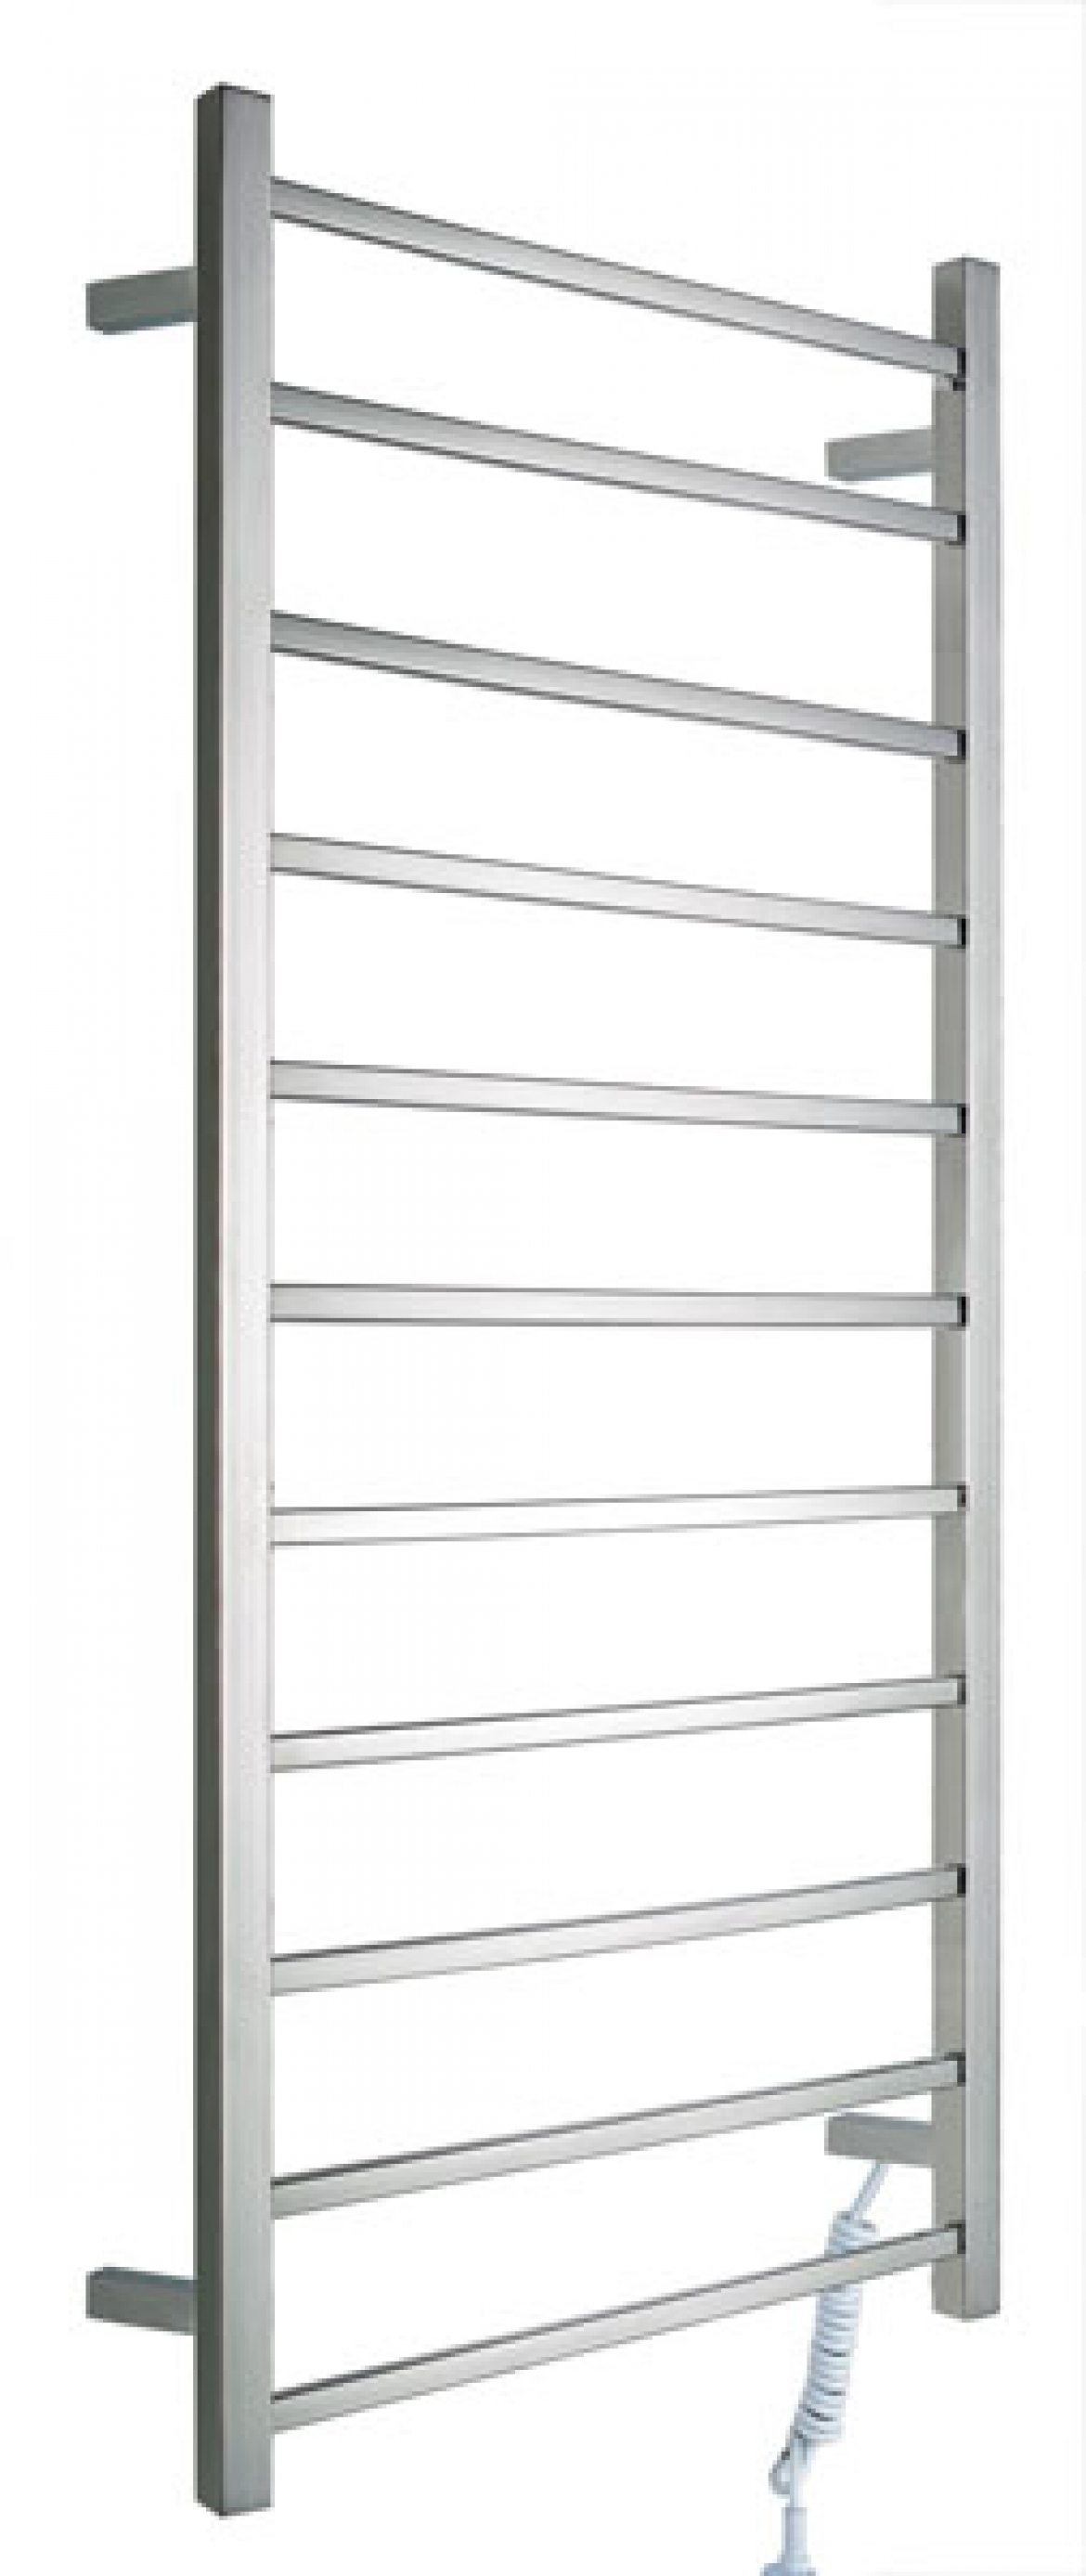 Heated towel rail[XY-G-2S]